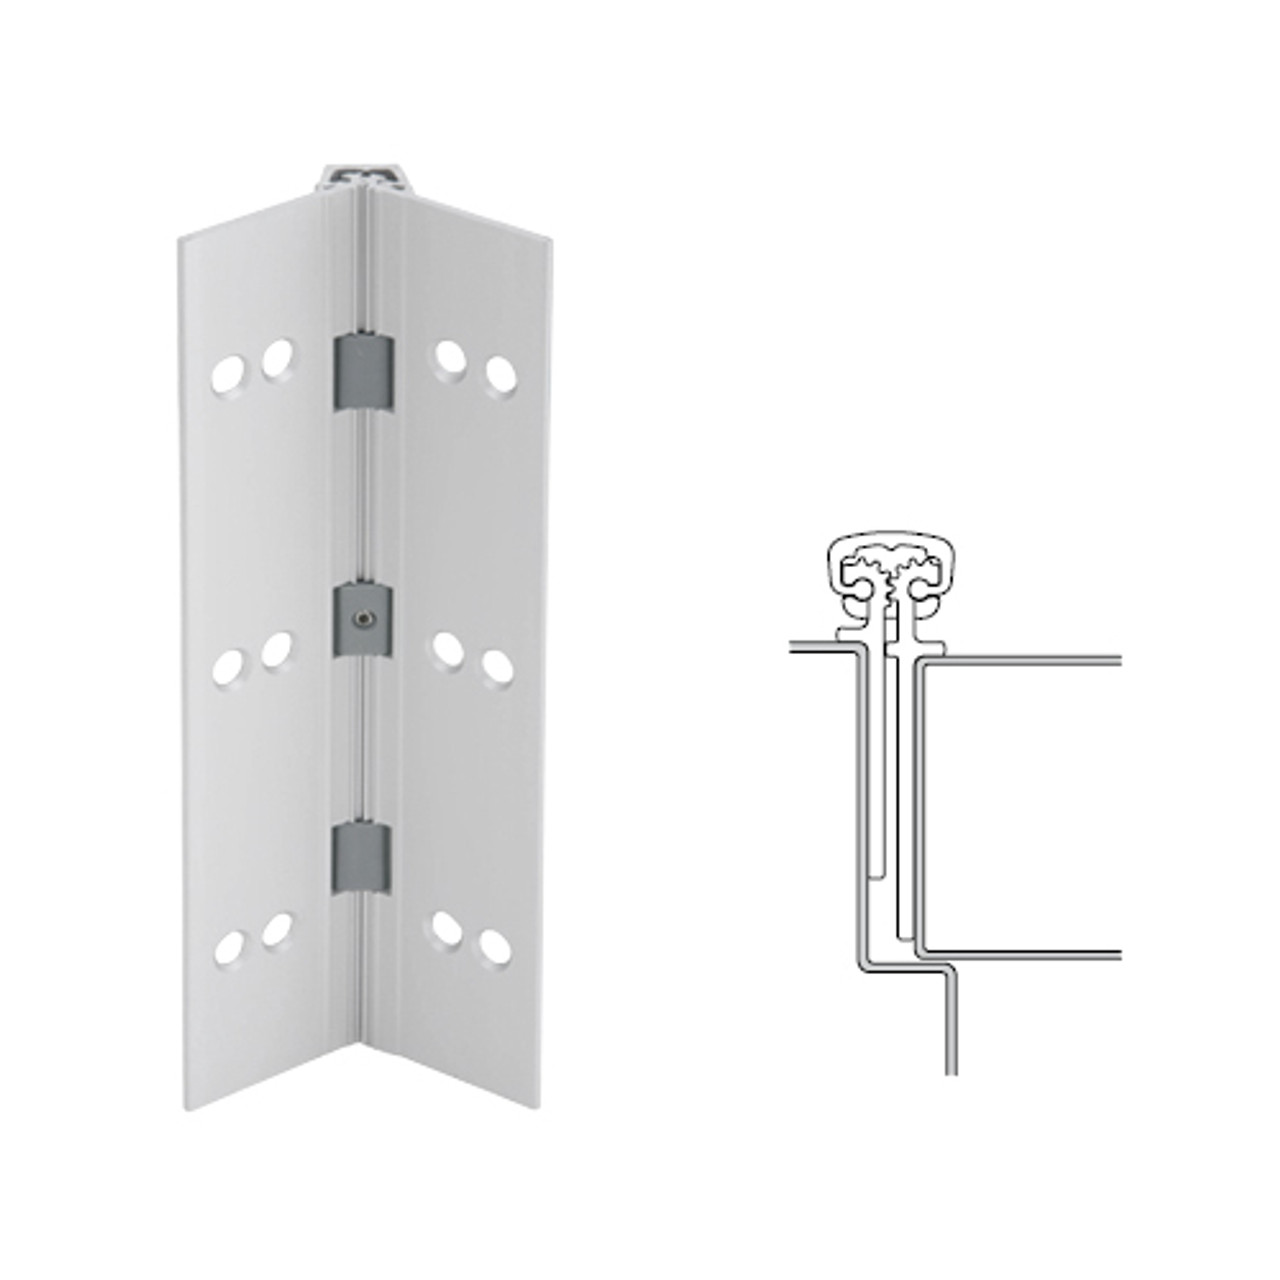 026XY-US28-85-TFWD IVES Full Mortise Continuous Geared Hinges with Thread Forming Screws in Satin Aluminum